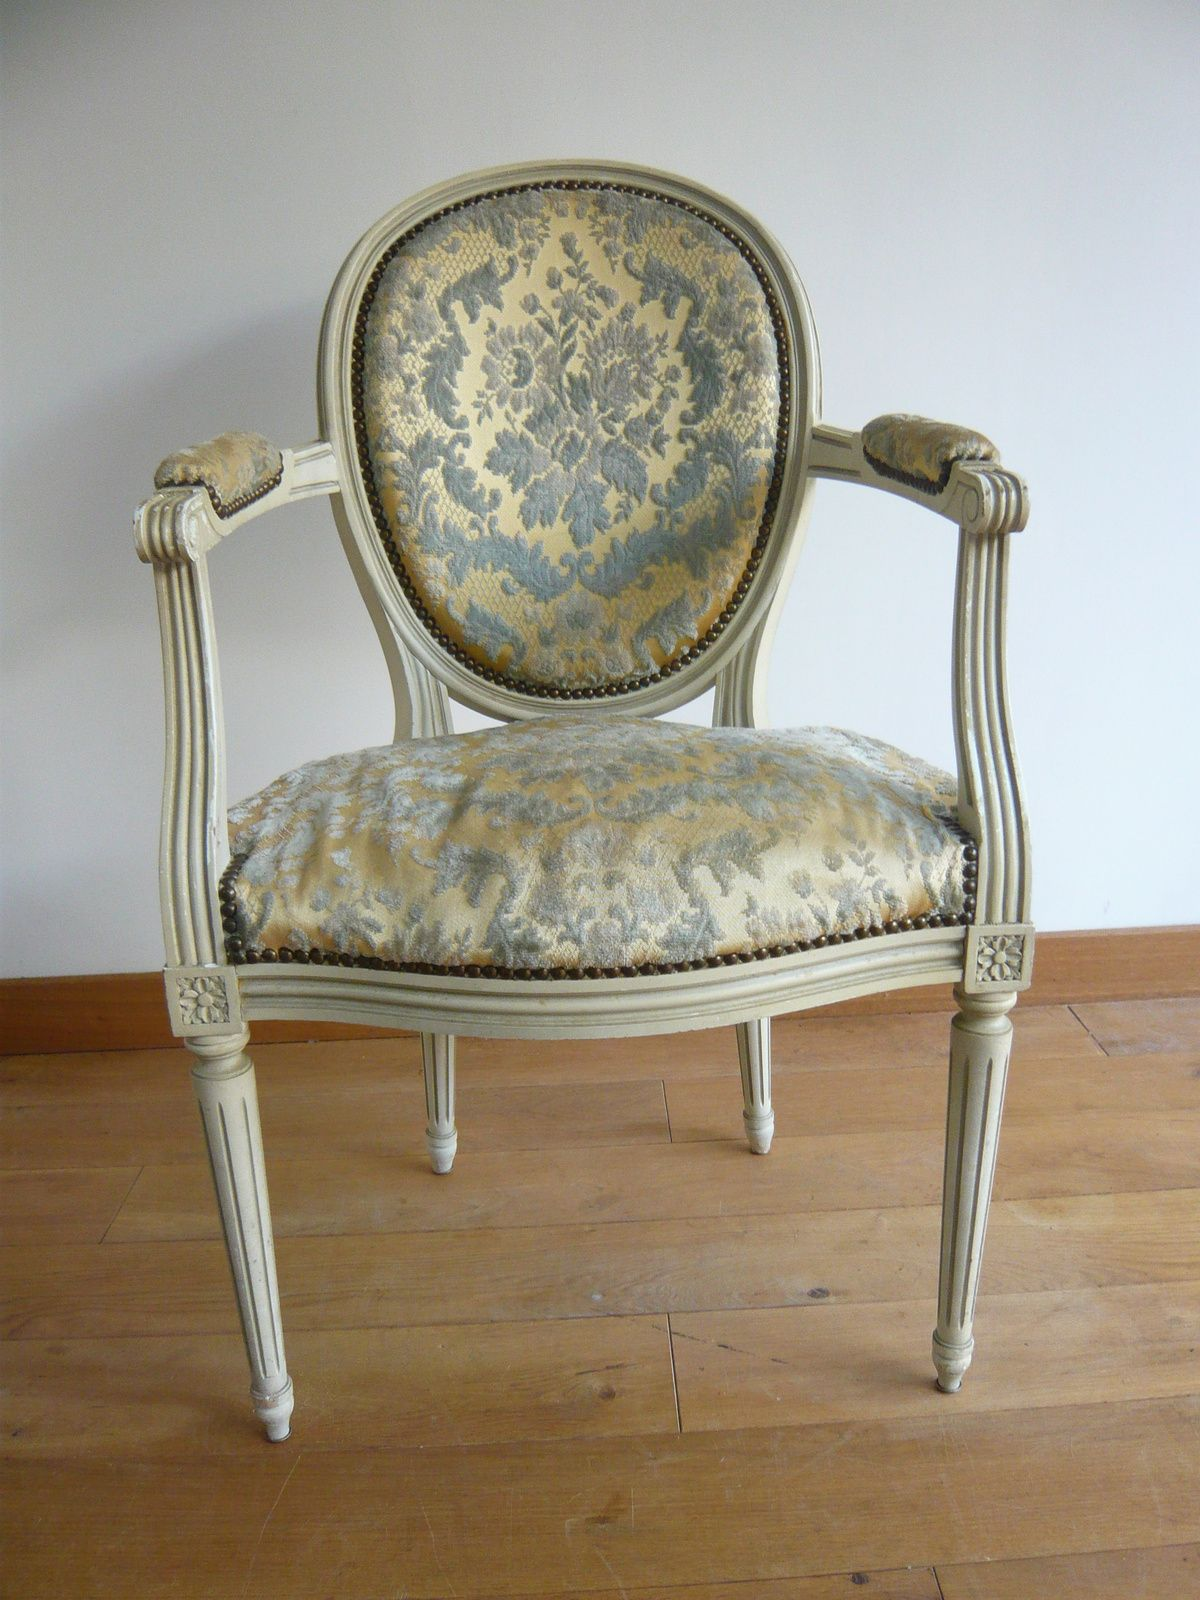 Fauteuils Medaillons Fauteuil Louis Xvi Medaillon Decor Louis Xvi Dining Chairs Chair